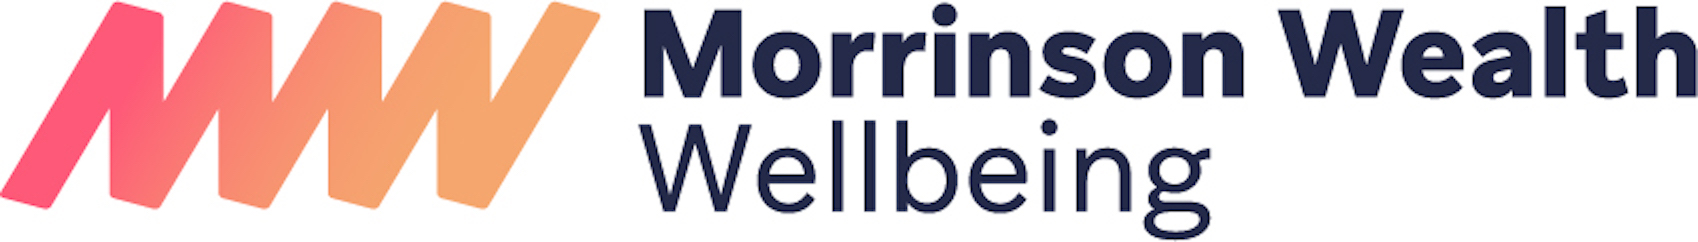 Morrison Wealth Wellbeing